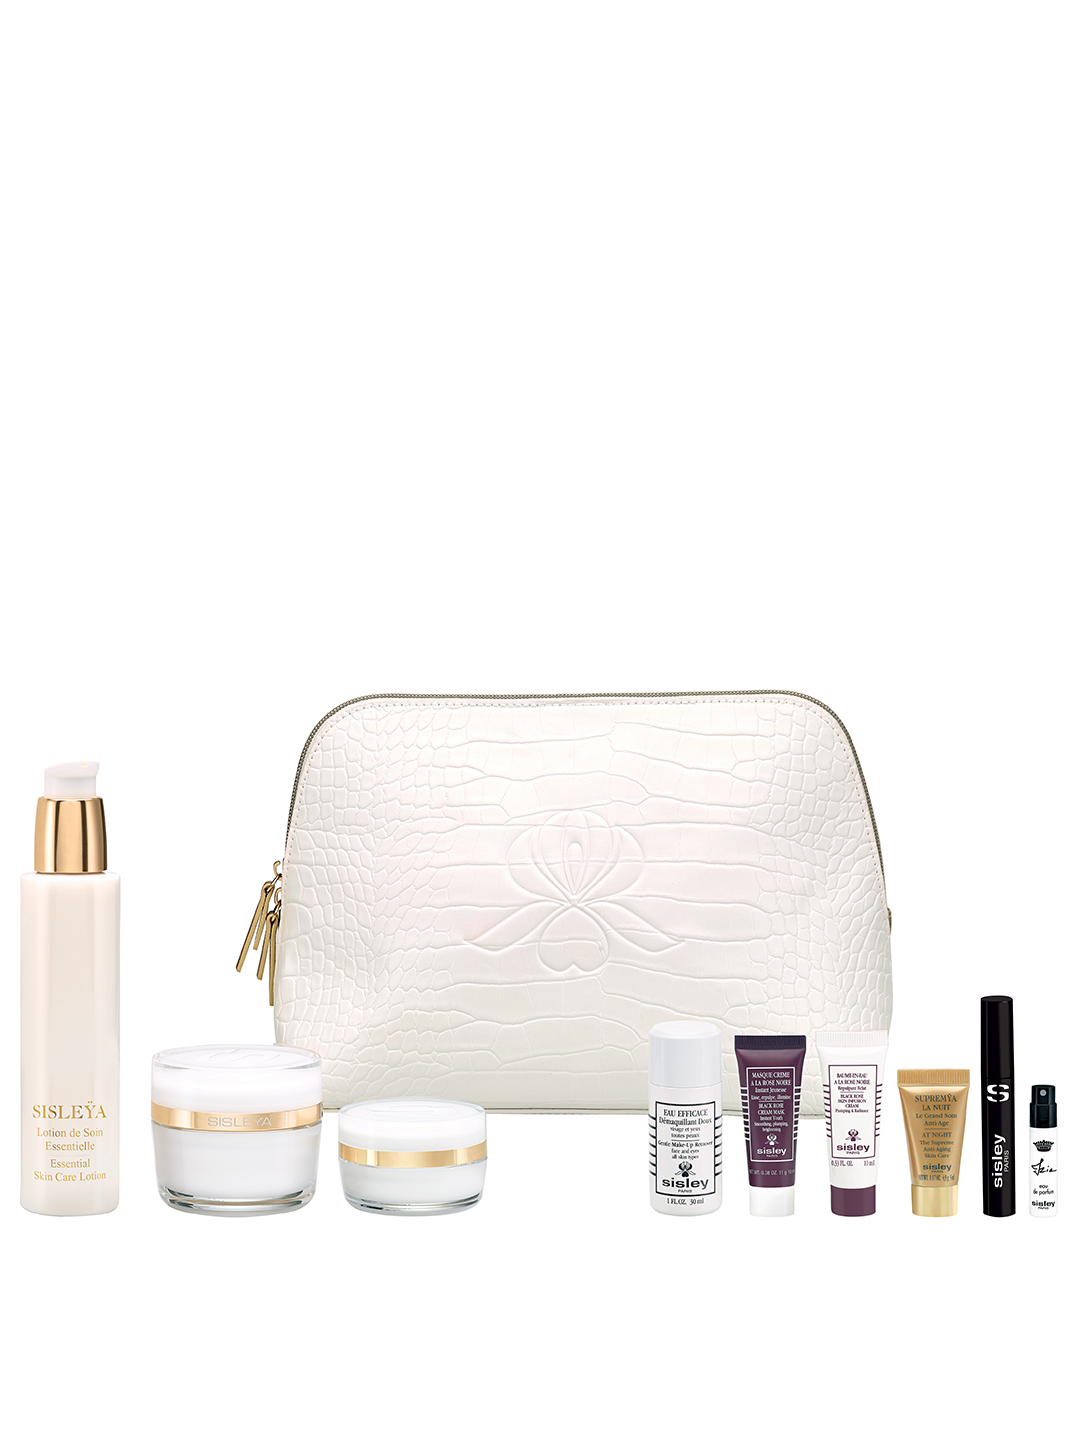 SISLEY-PARIS Sisleÿa Vanity Prestige Anti-Aging Set Beauty